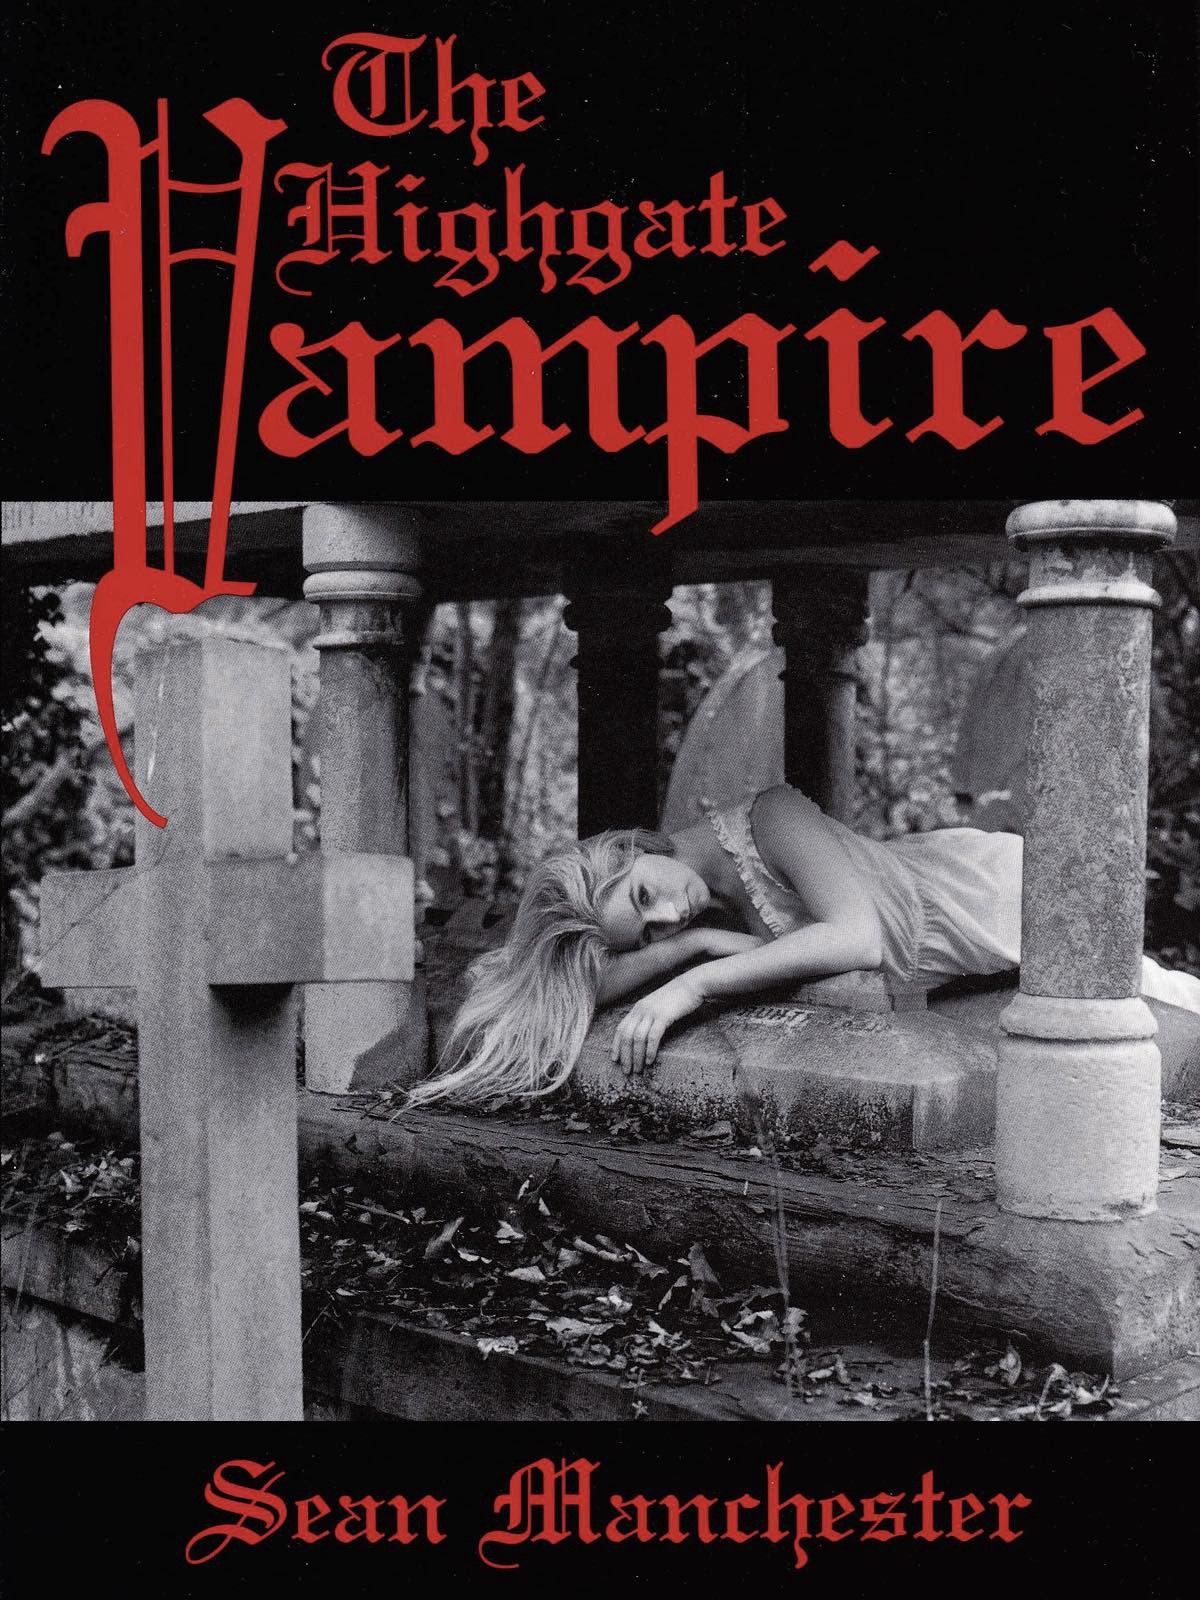 Manchester weaves an incredible story in The Highgate Vampire.